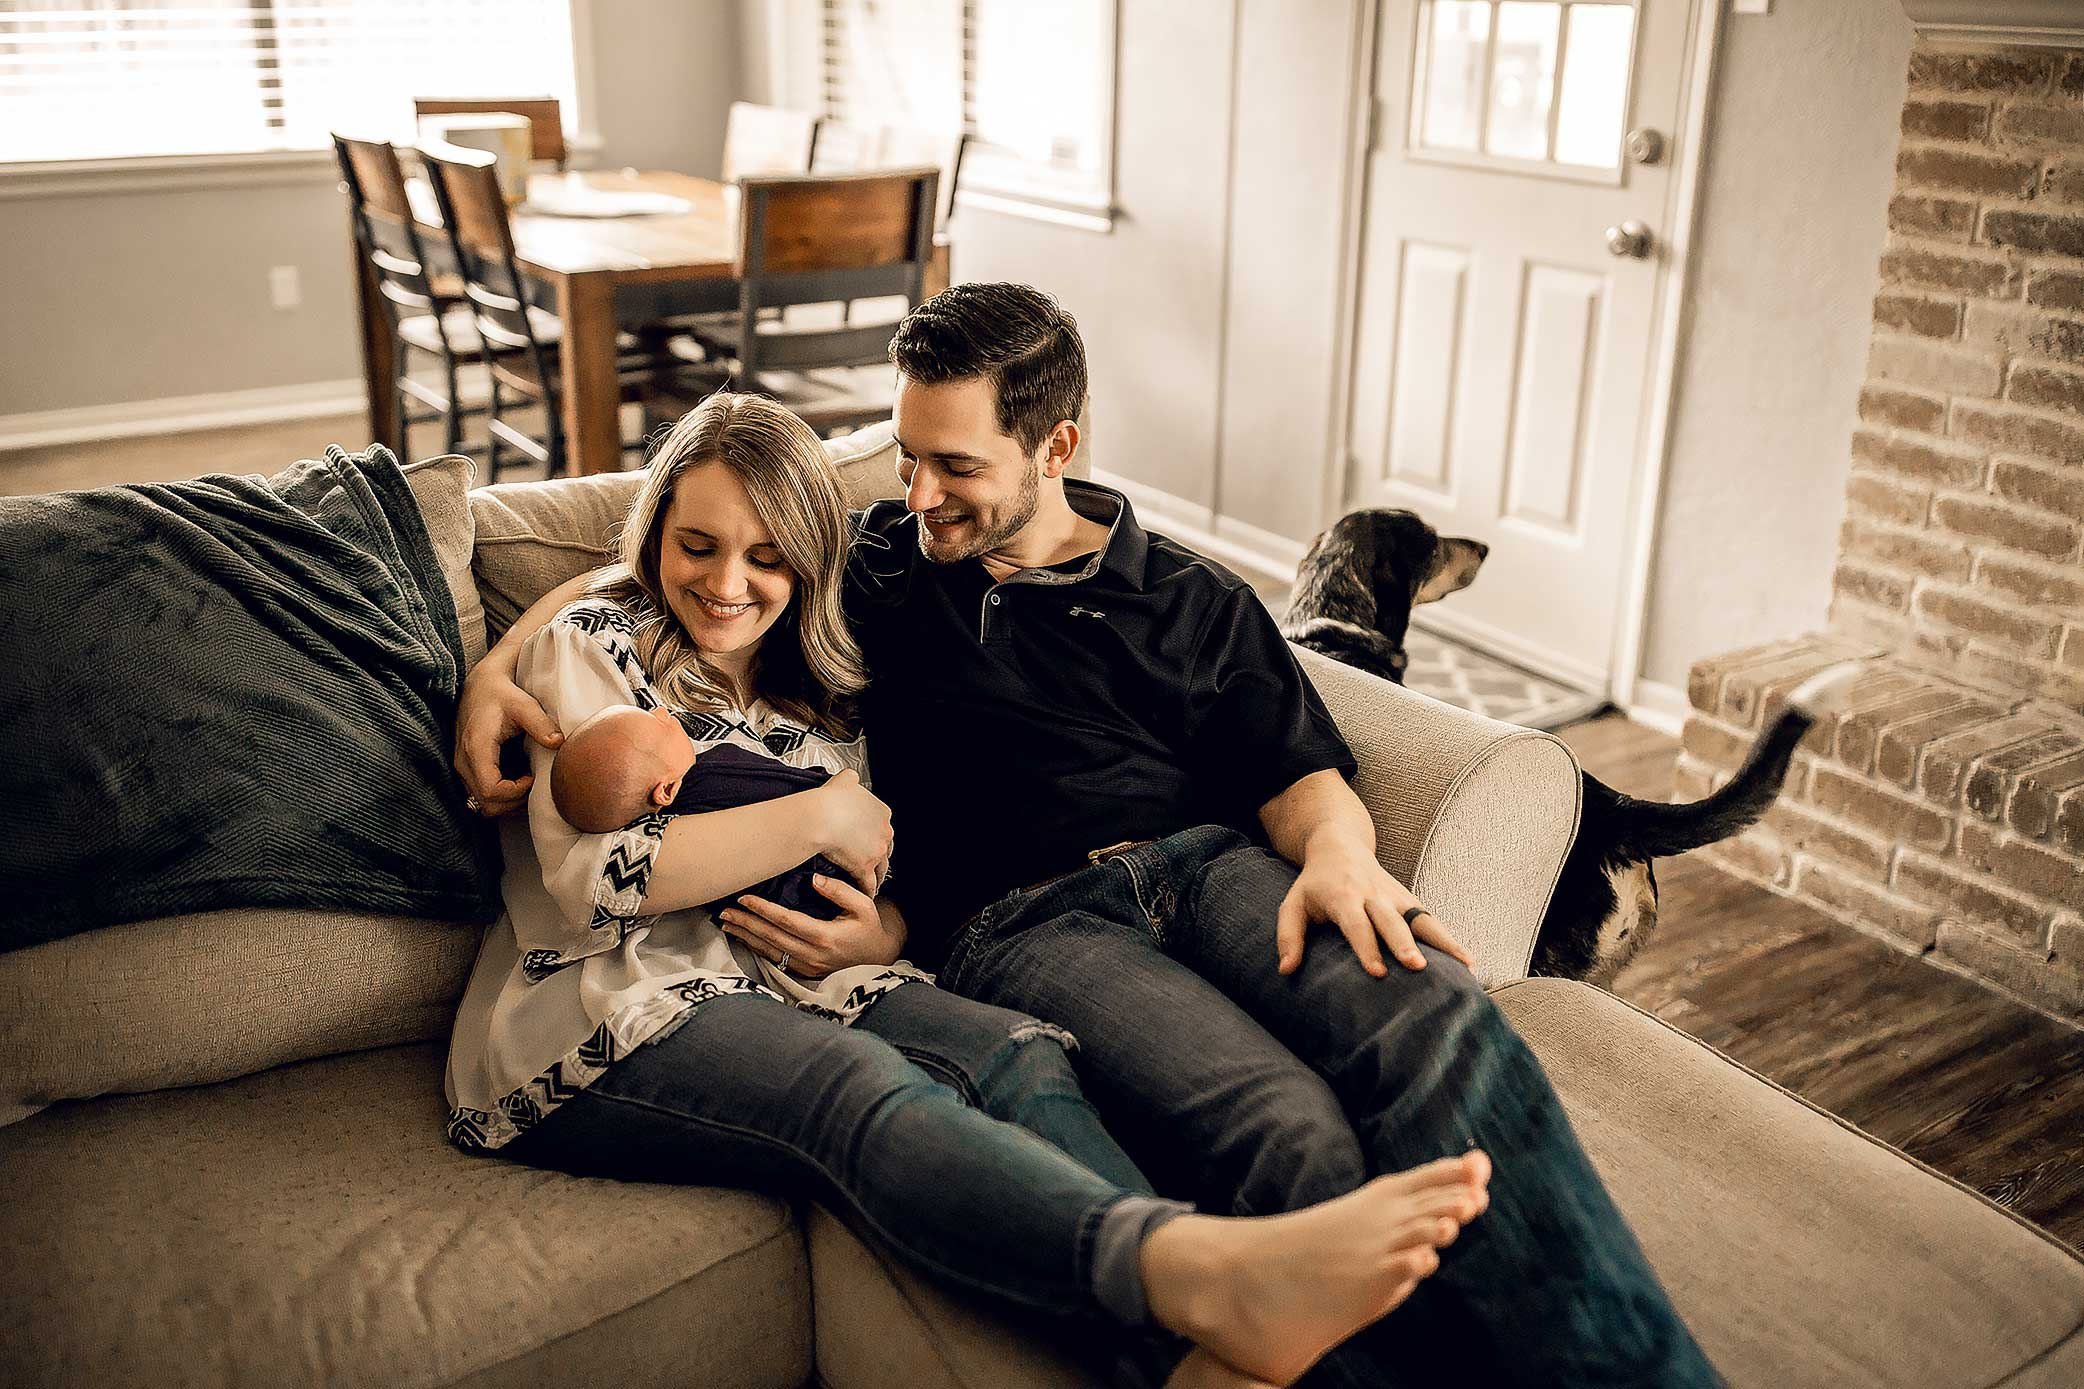 shelby-schiller-photography-lifestyle-newborn-lounging-on-couch-with-dog-included.jpg